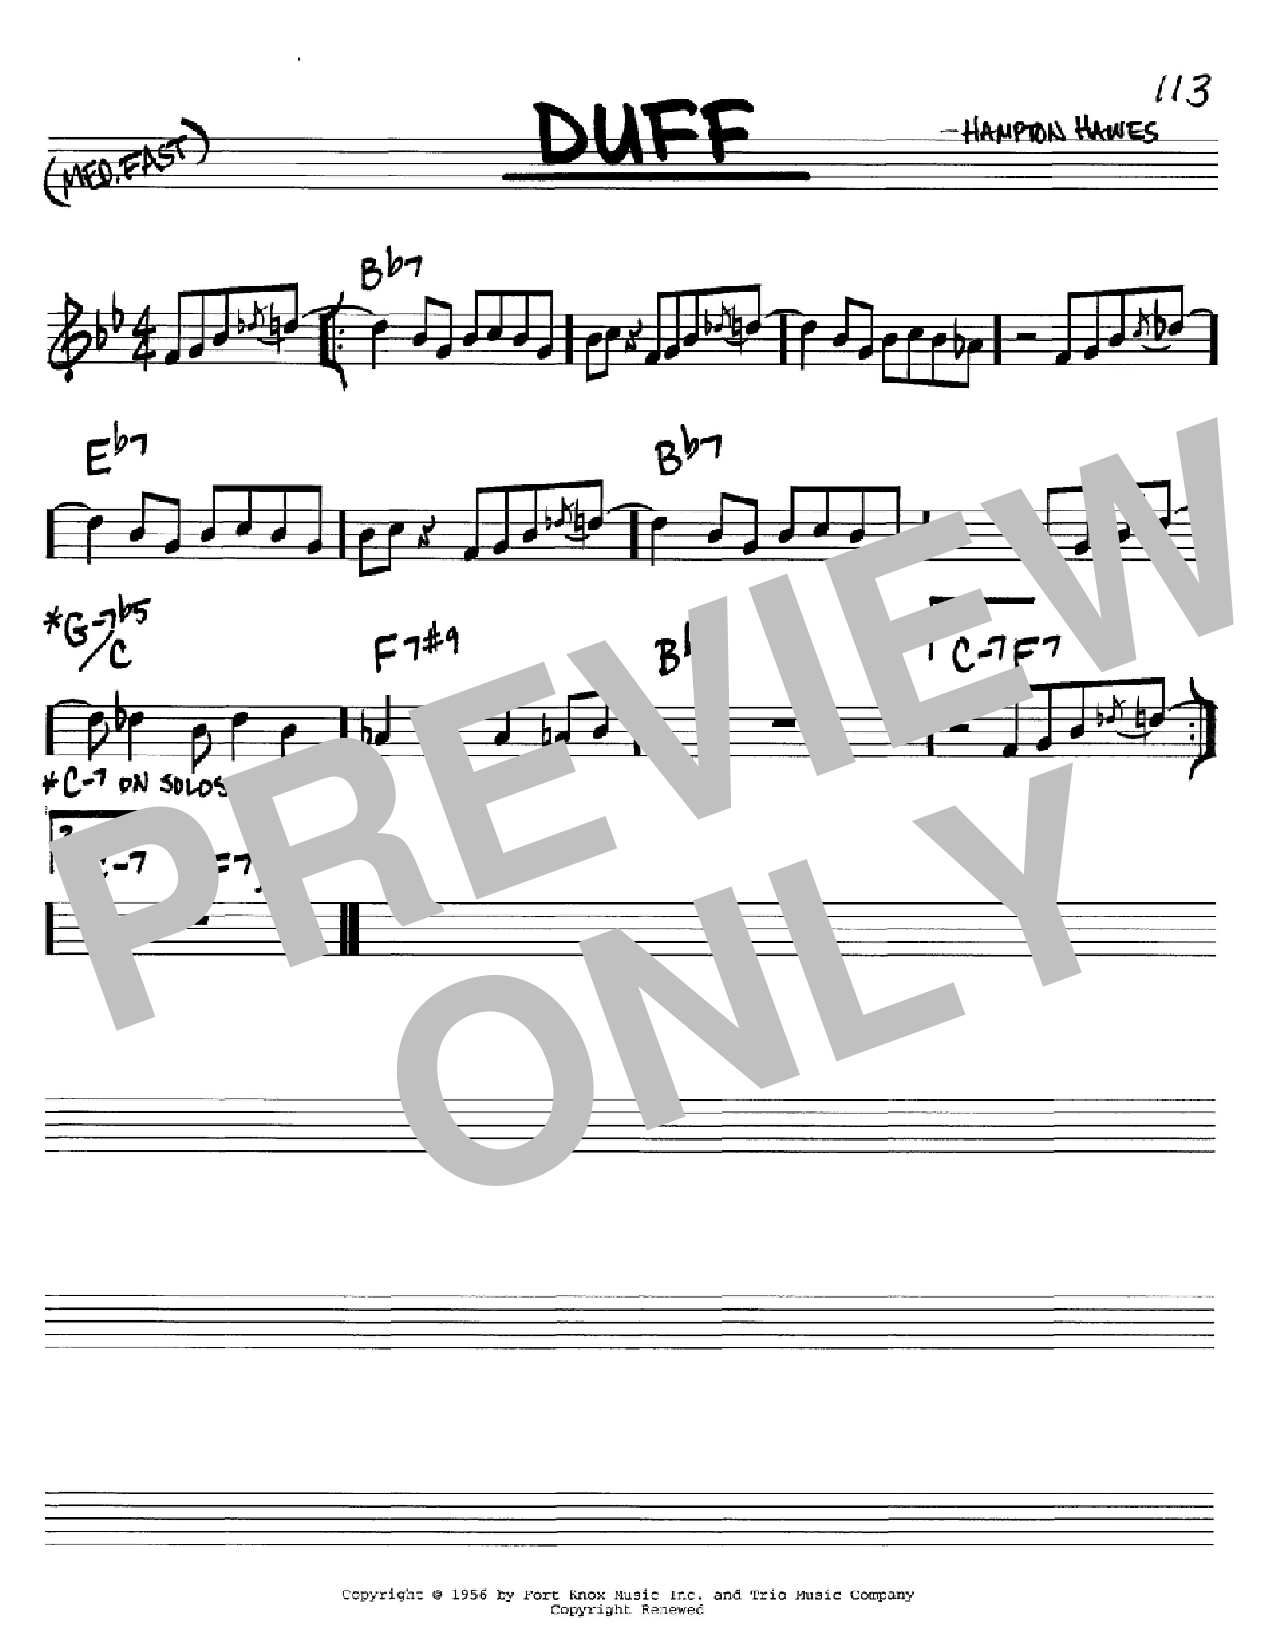 Duff Sheet Music